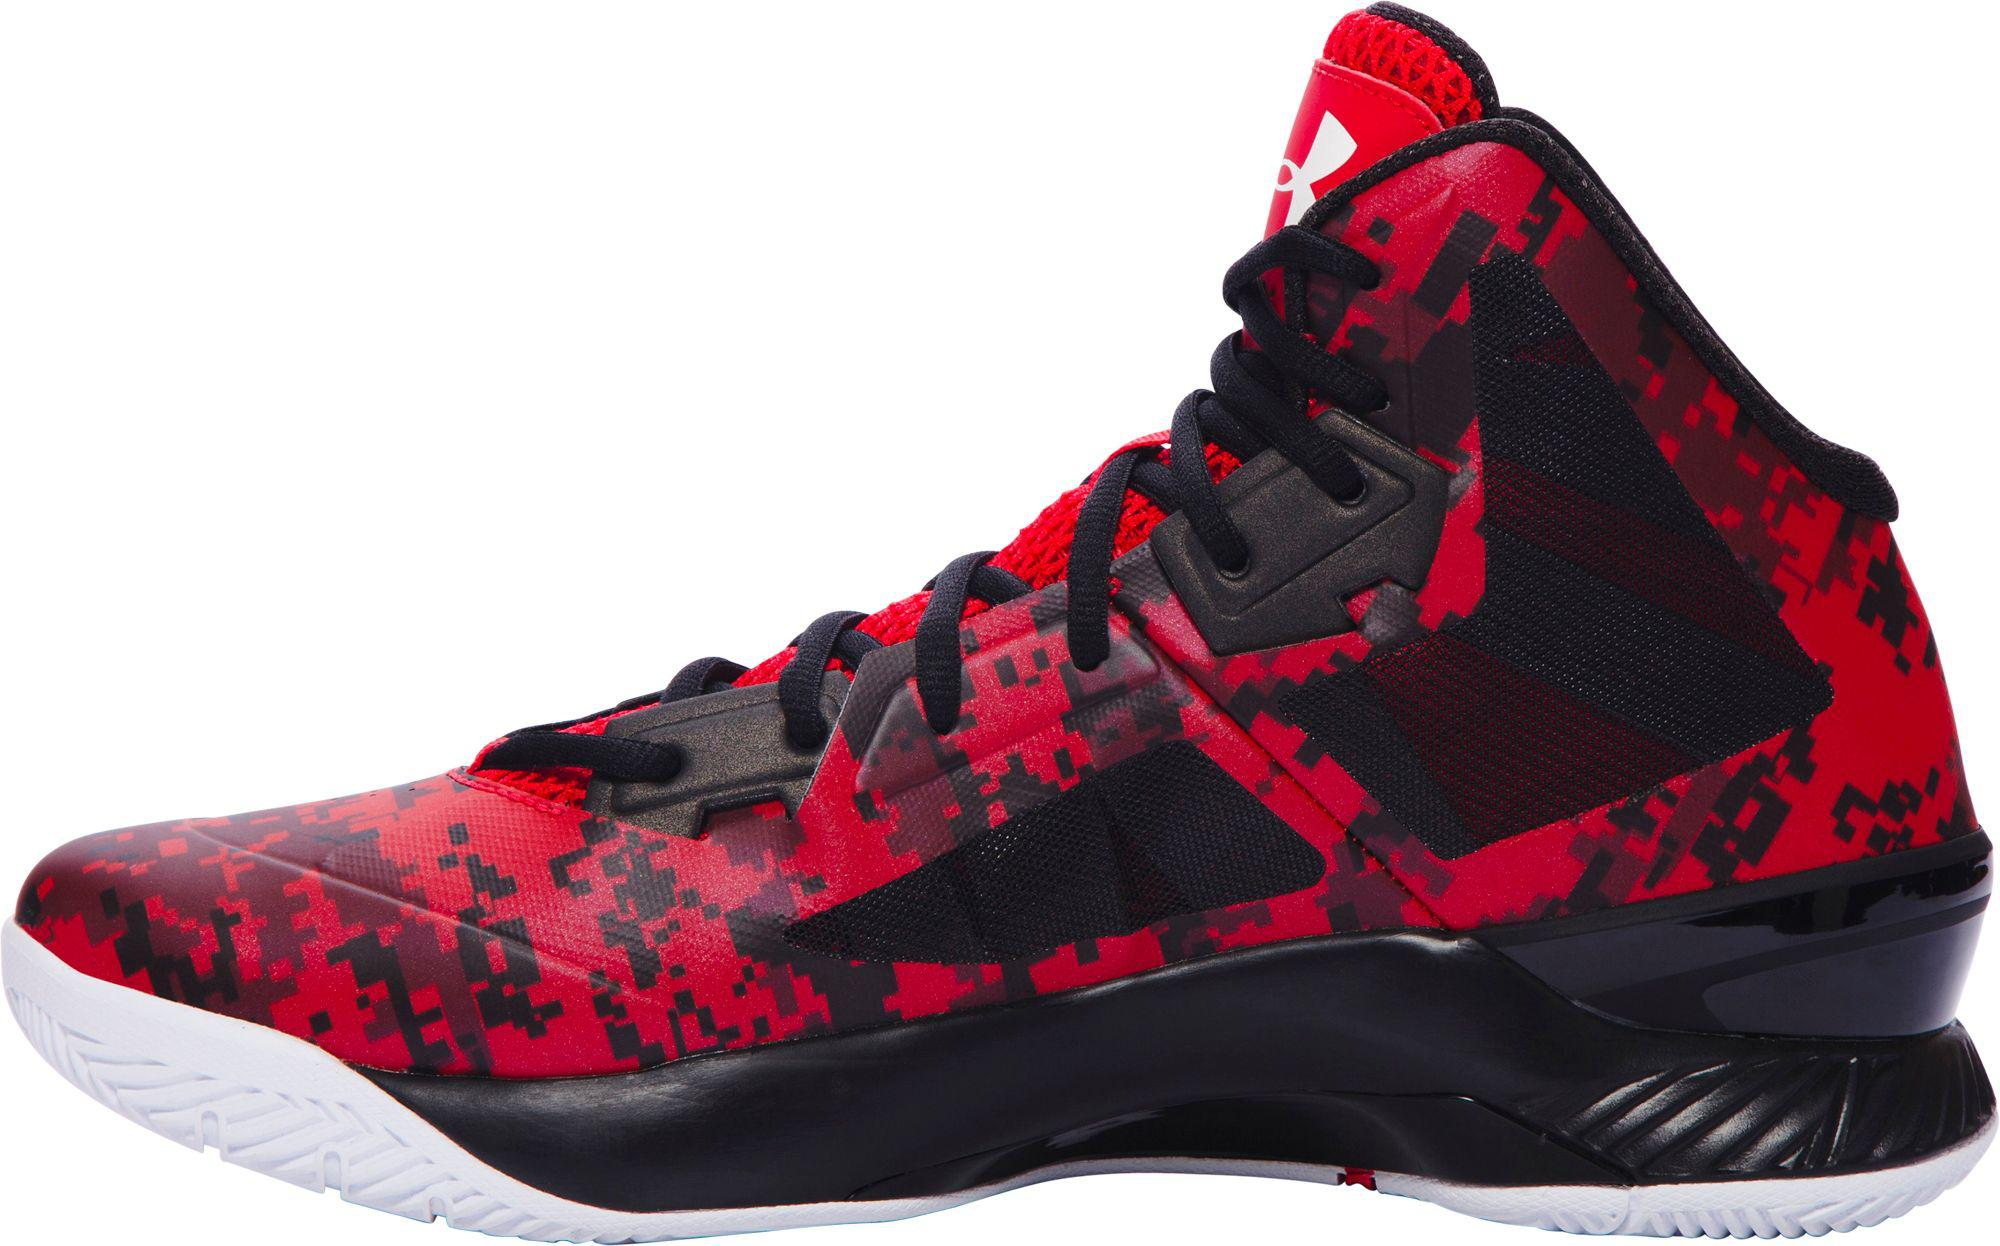 c68847556713 ... new arrivals lyst under armour clutchfit lightning basketball shoes in  red for men c1867 d1eaf